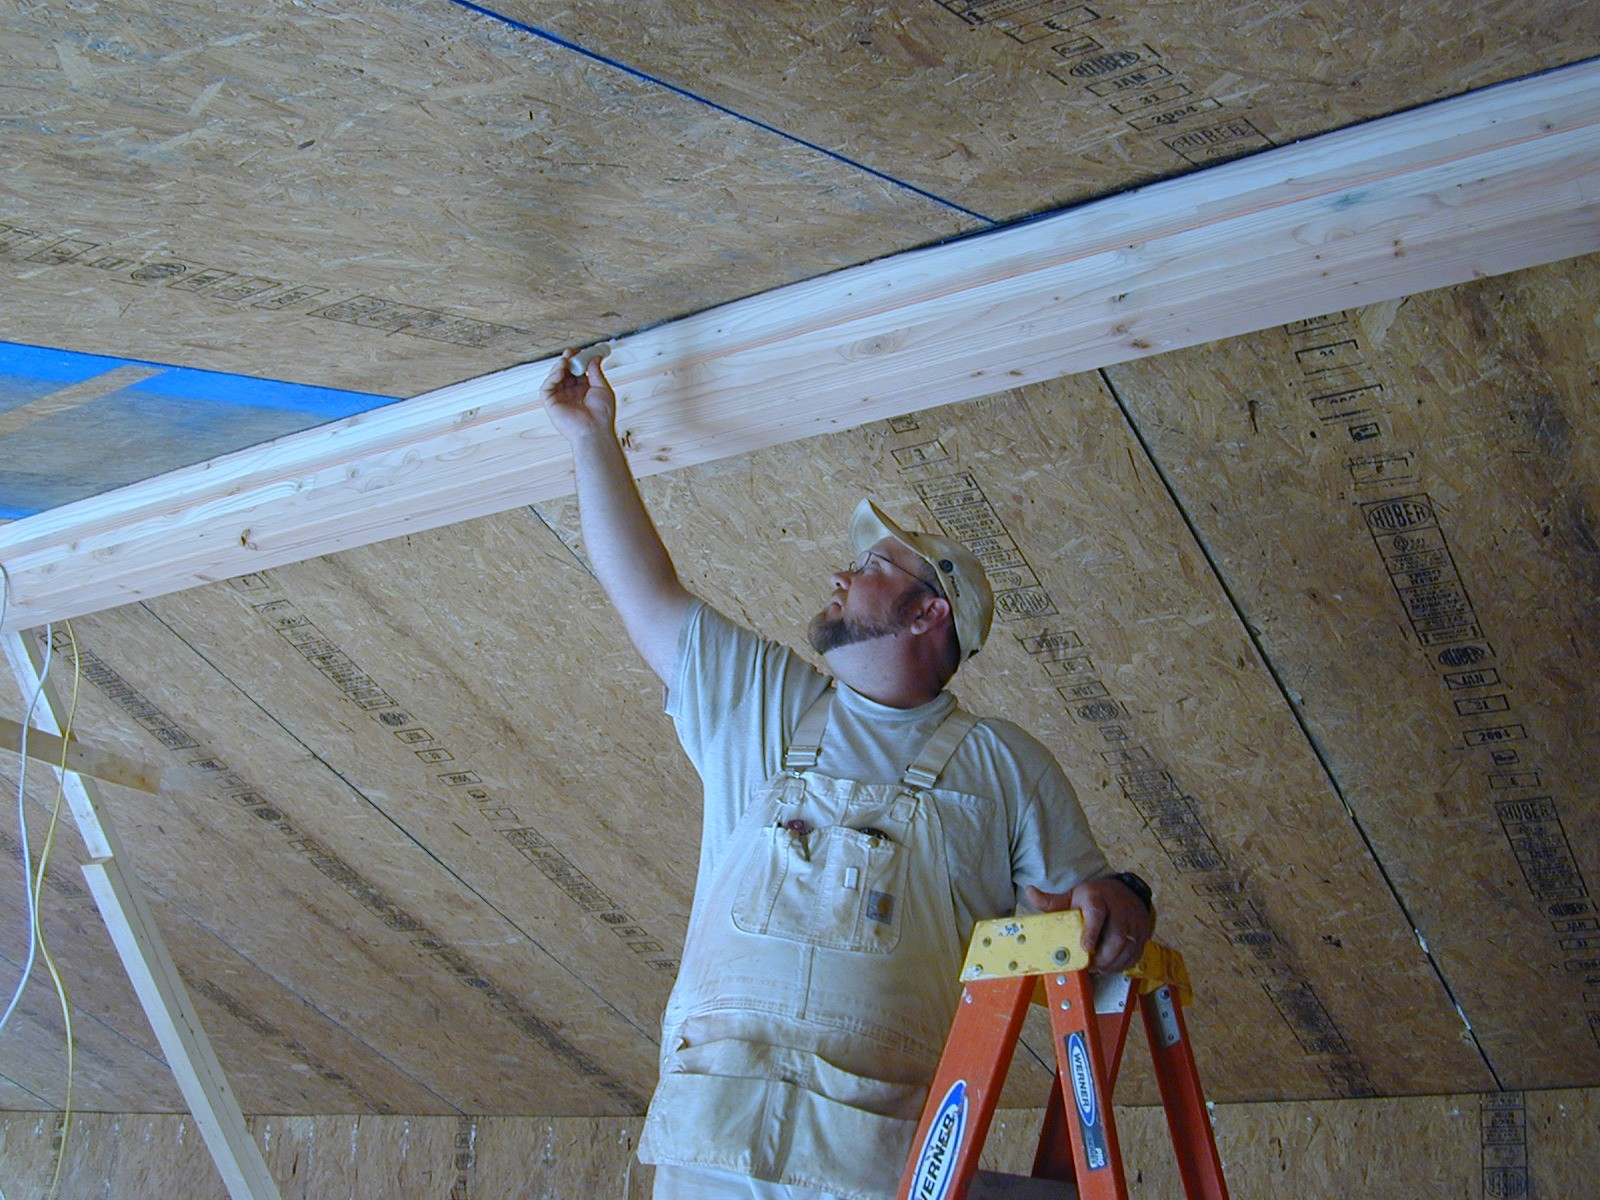 Use a smoke pencil to check for air leaks at SIP panel seams, especially along the ridge beam